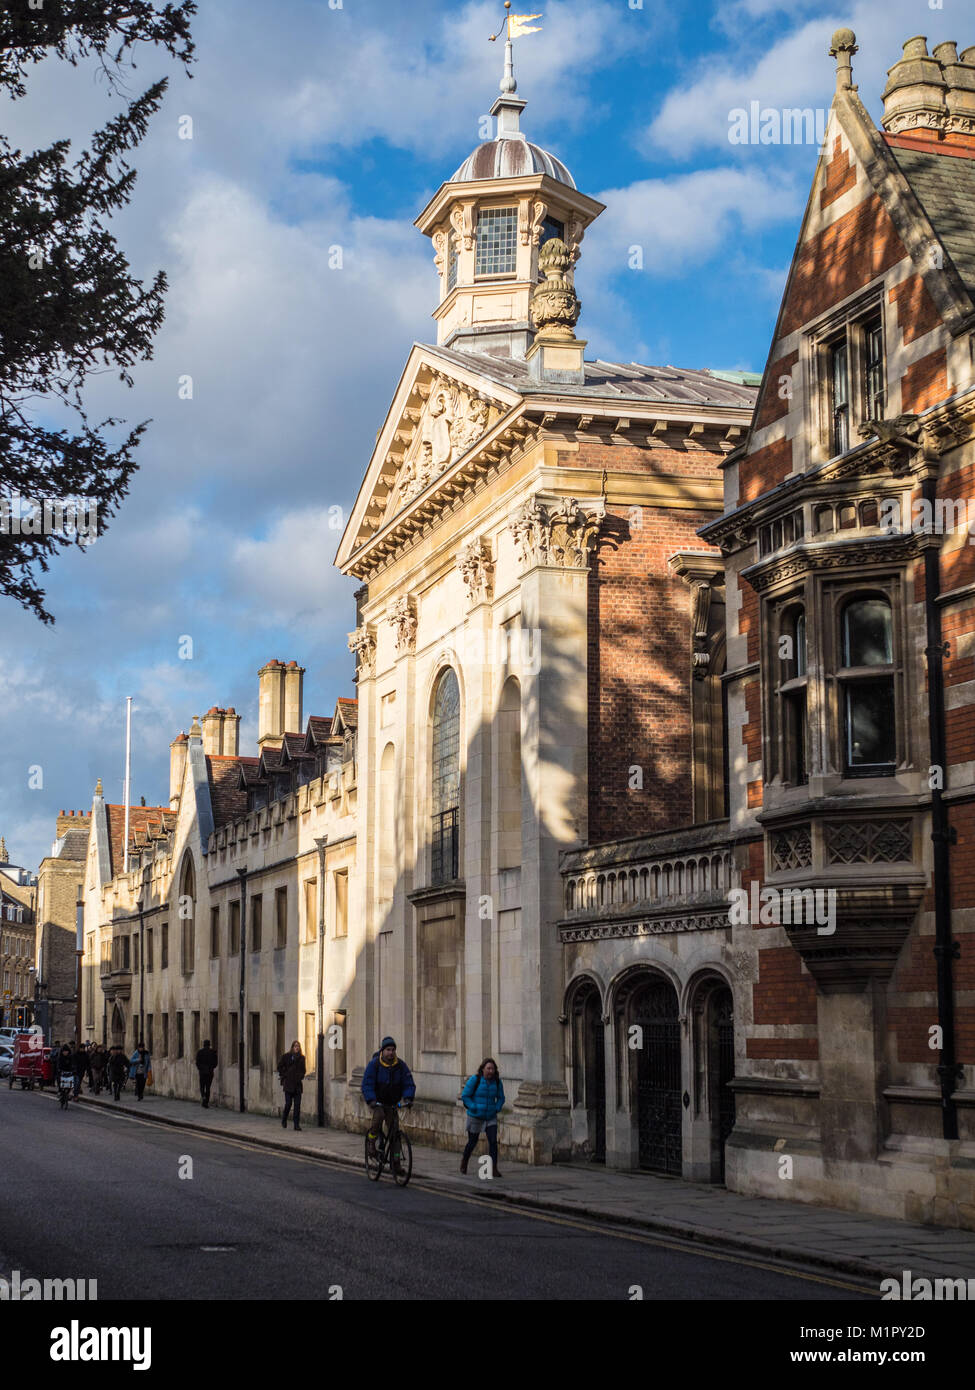 Pembroke College, University of Cambridge - Exterior of Pembroke College, founded in 1347, in central Cambridge - Stock Image